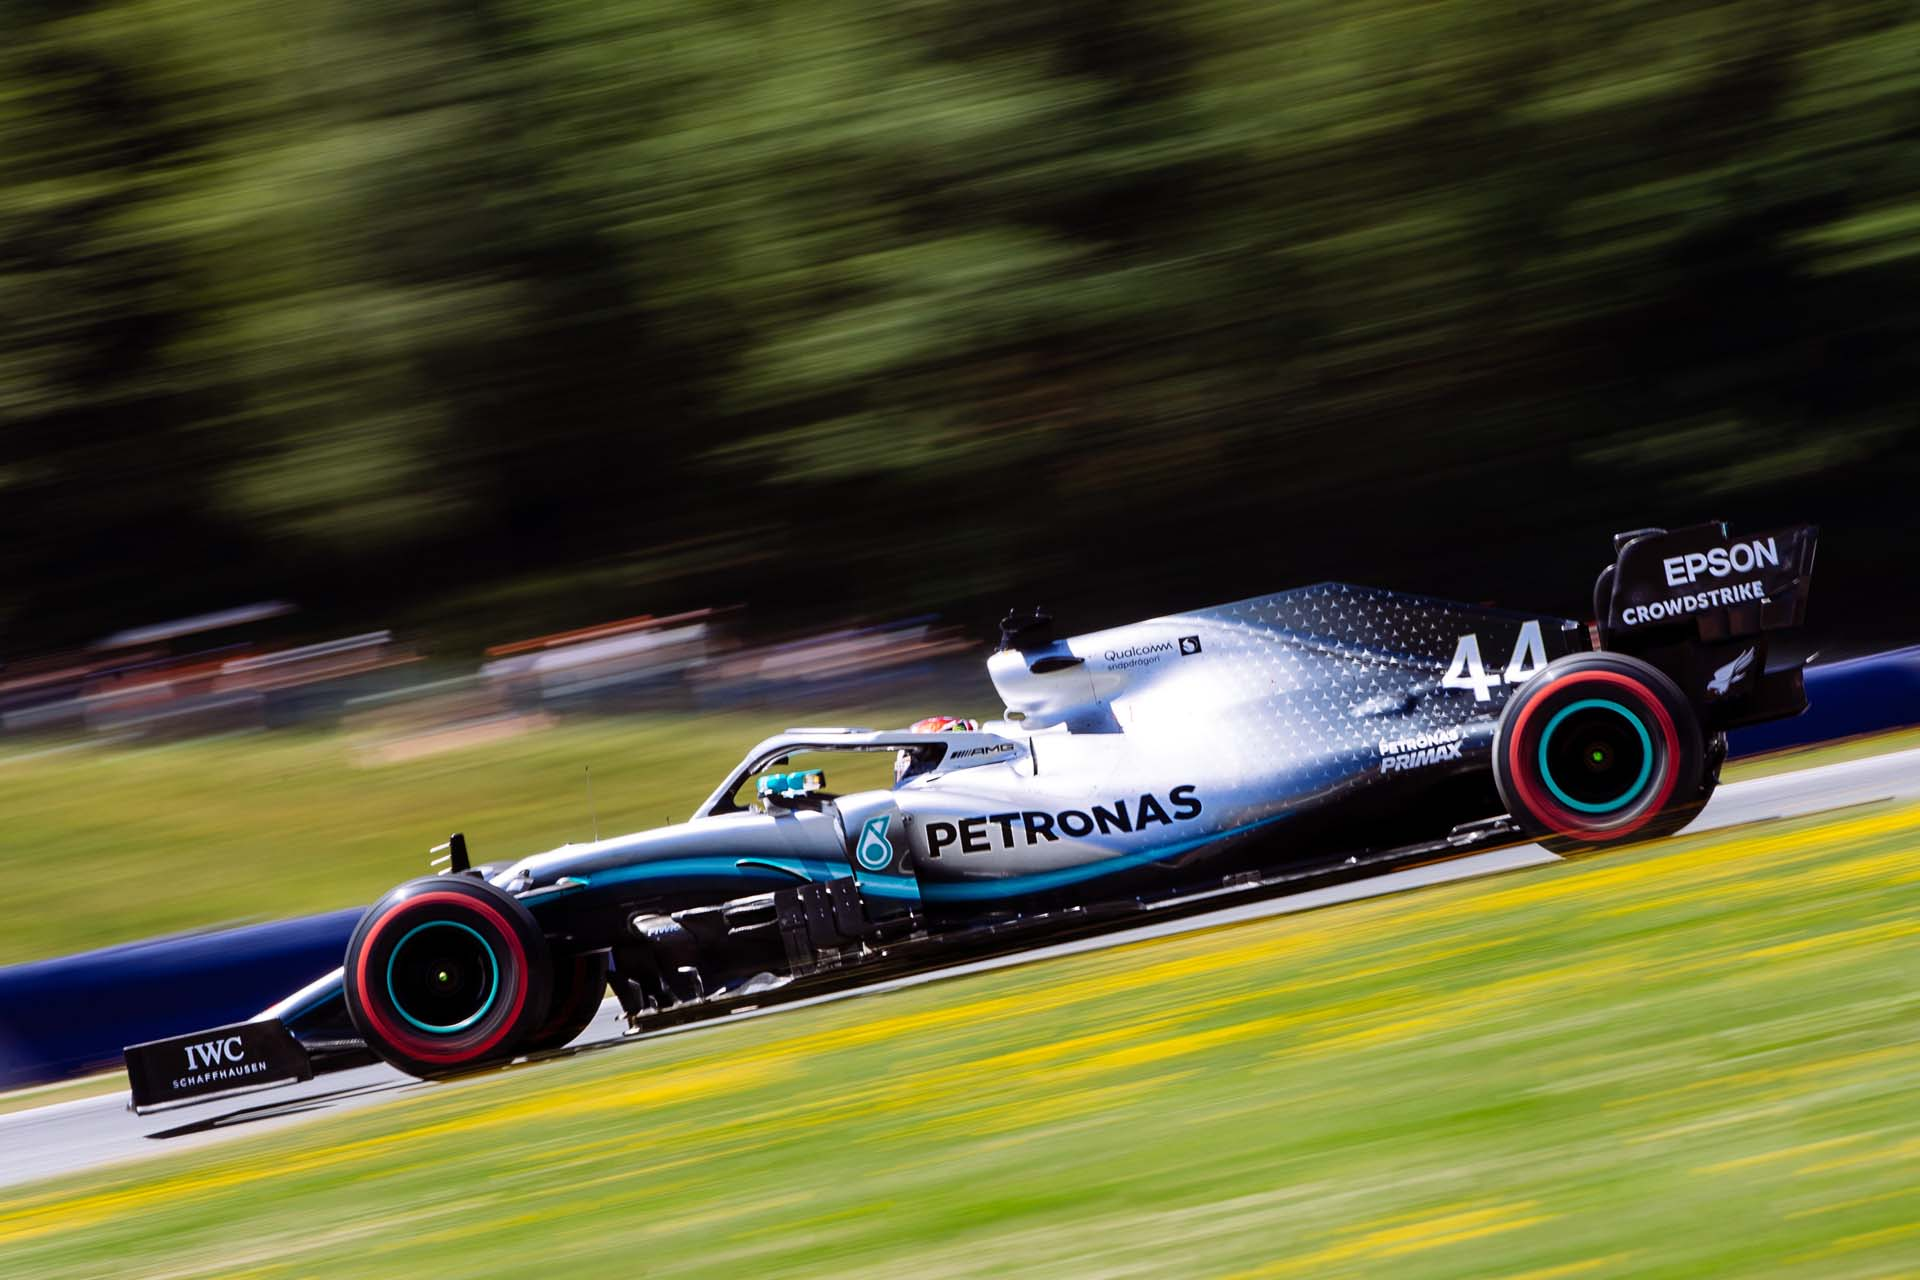 SPIELBERG,AUSTRIA,29.JUN.19 - MOTORSPORTS, FORMULA 1 - Grand Prix of Austria, Red Bull Ring, qualification. Image shows Lewis Hamilton (GBR/ Mercedes). Photo: GEPA pictures/ Matic Klansek - For editorial use only. Image is free of charge.